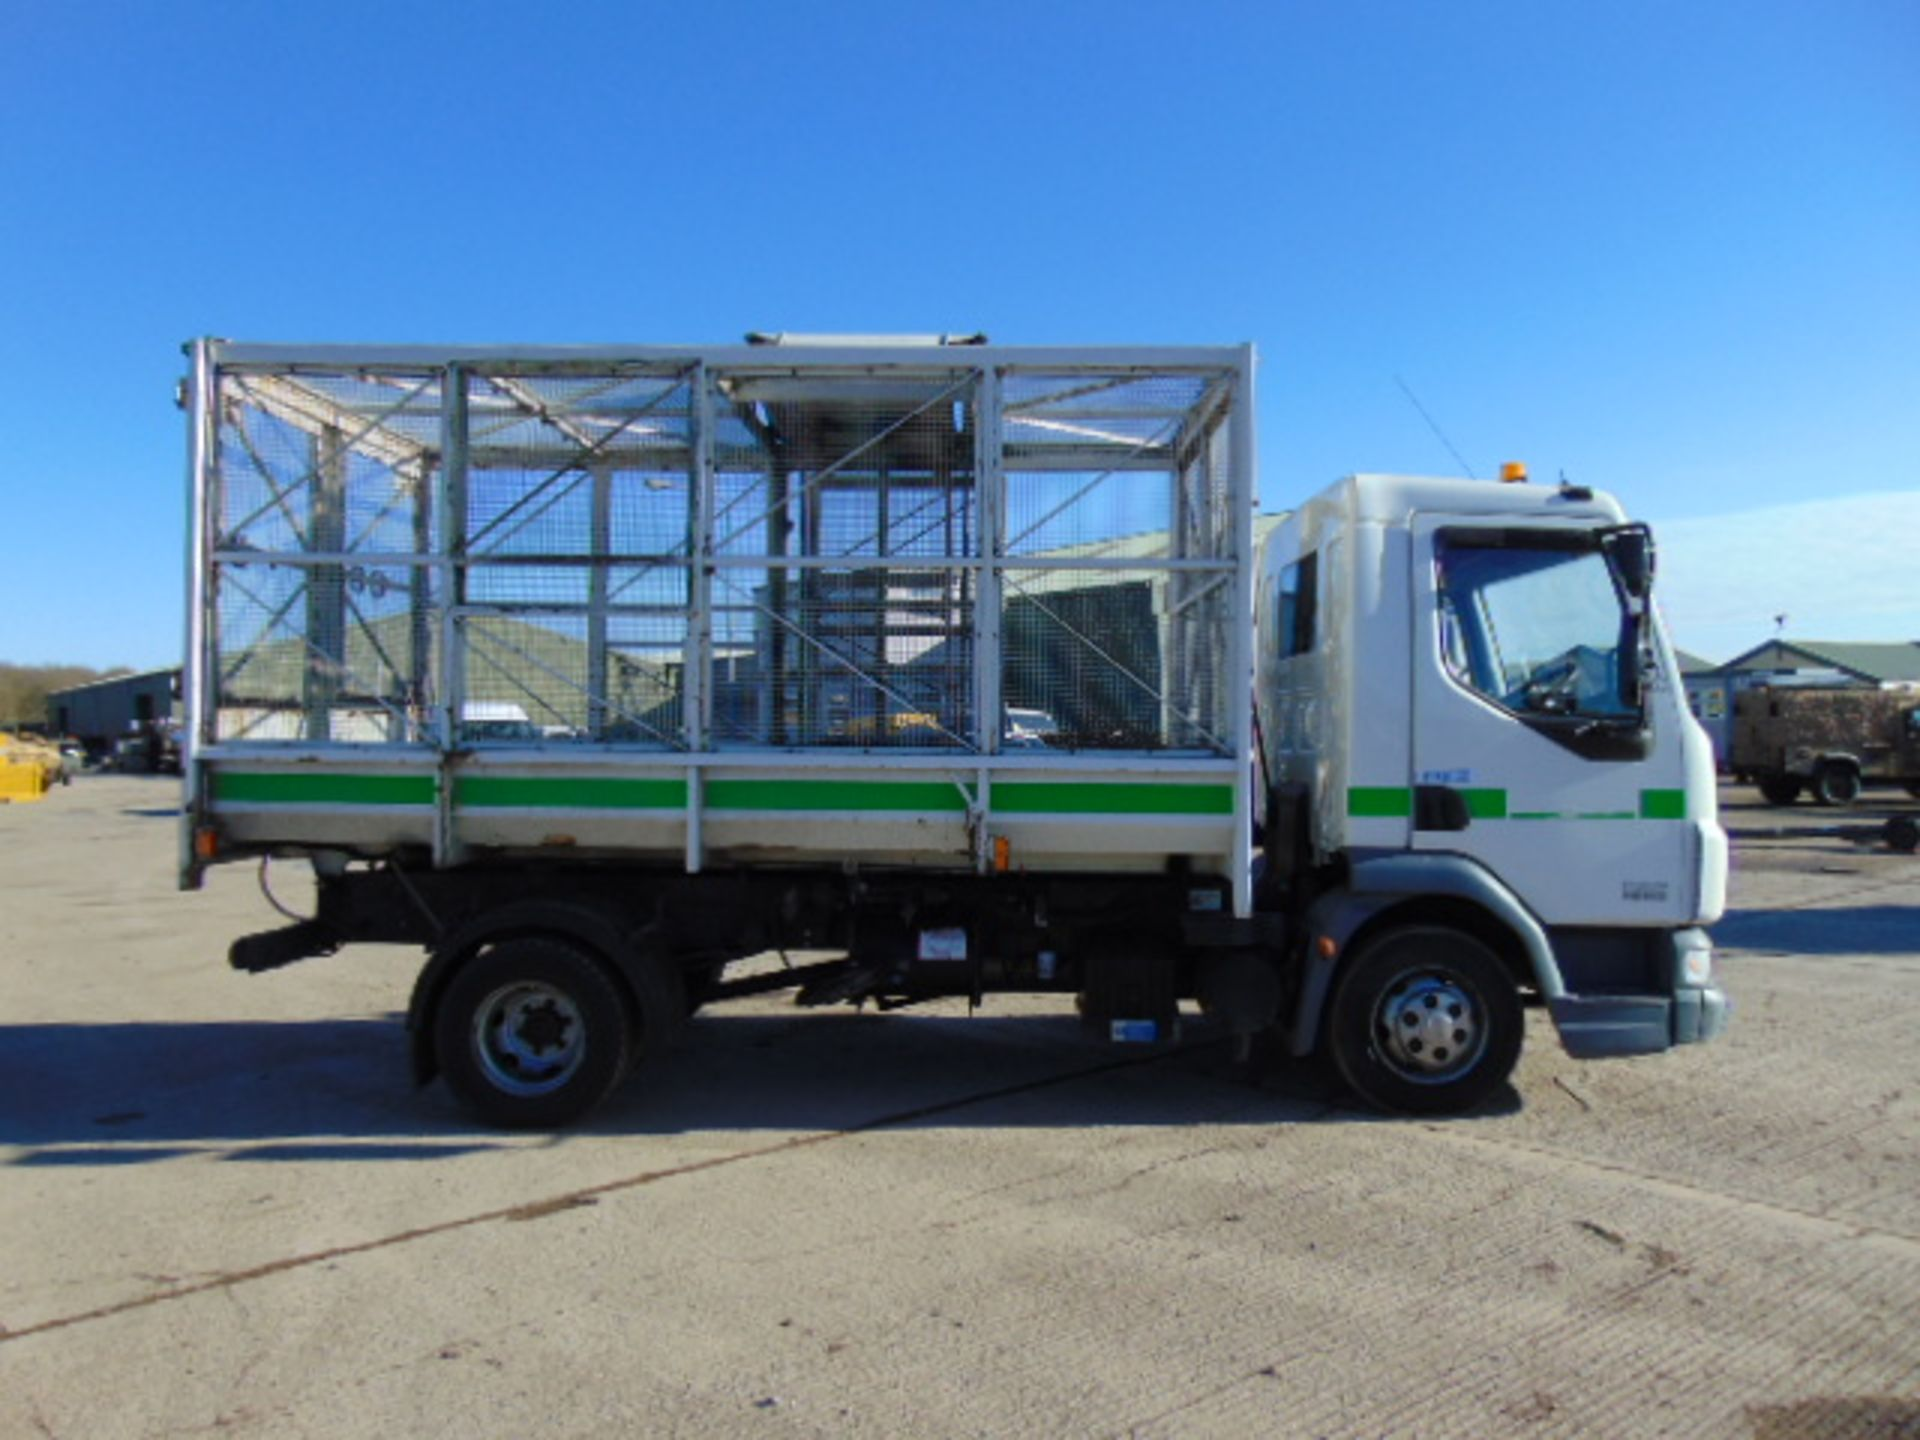 Lot 34 - 2008 DAF LF 45.140 C/W Refuse Cage, Rear Tipping Body and Side Bin Lift